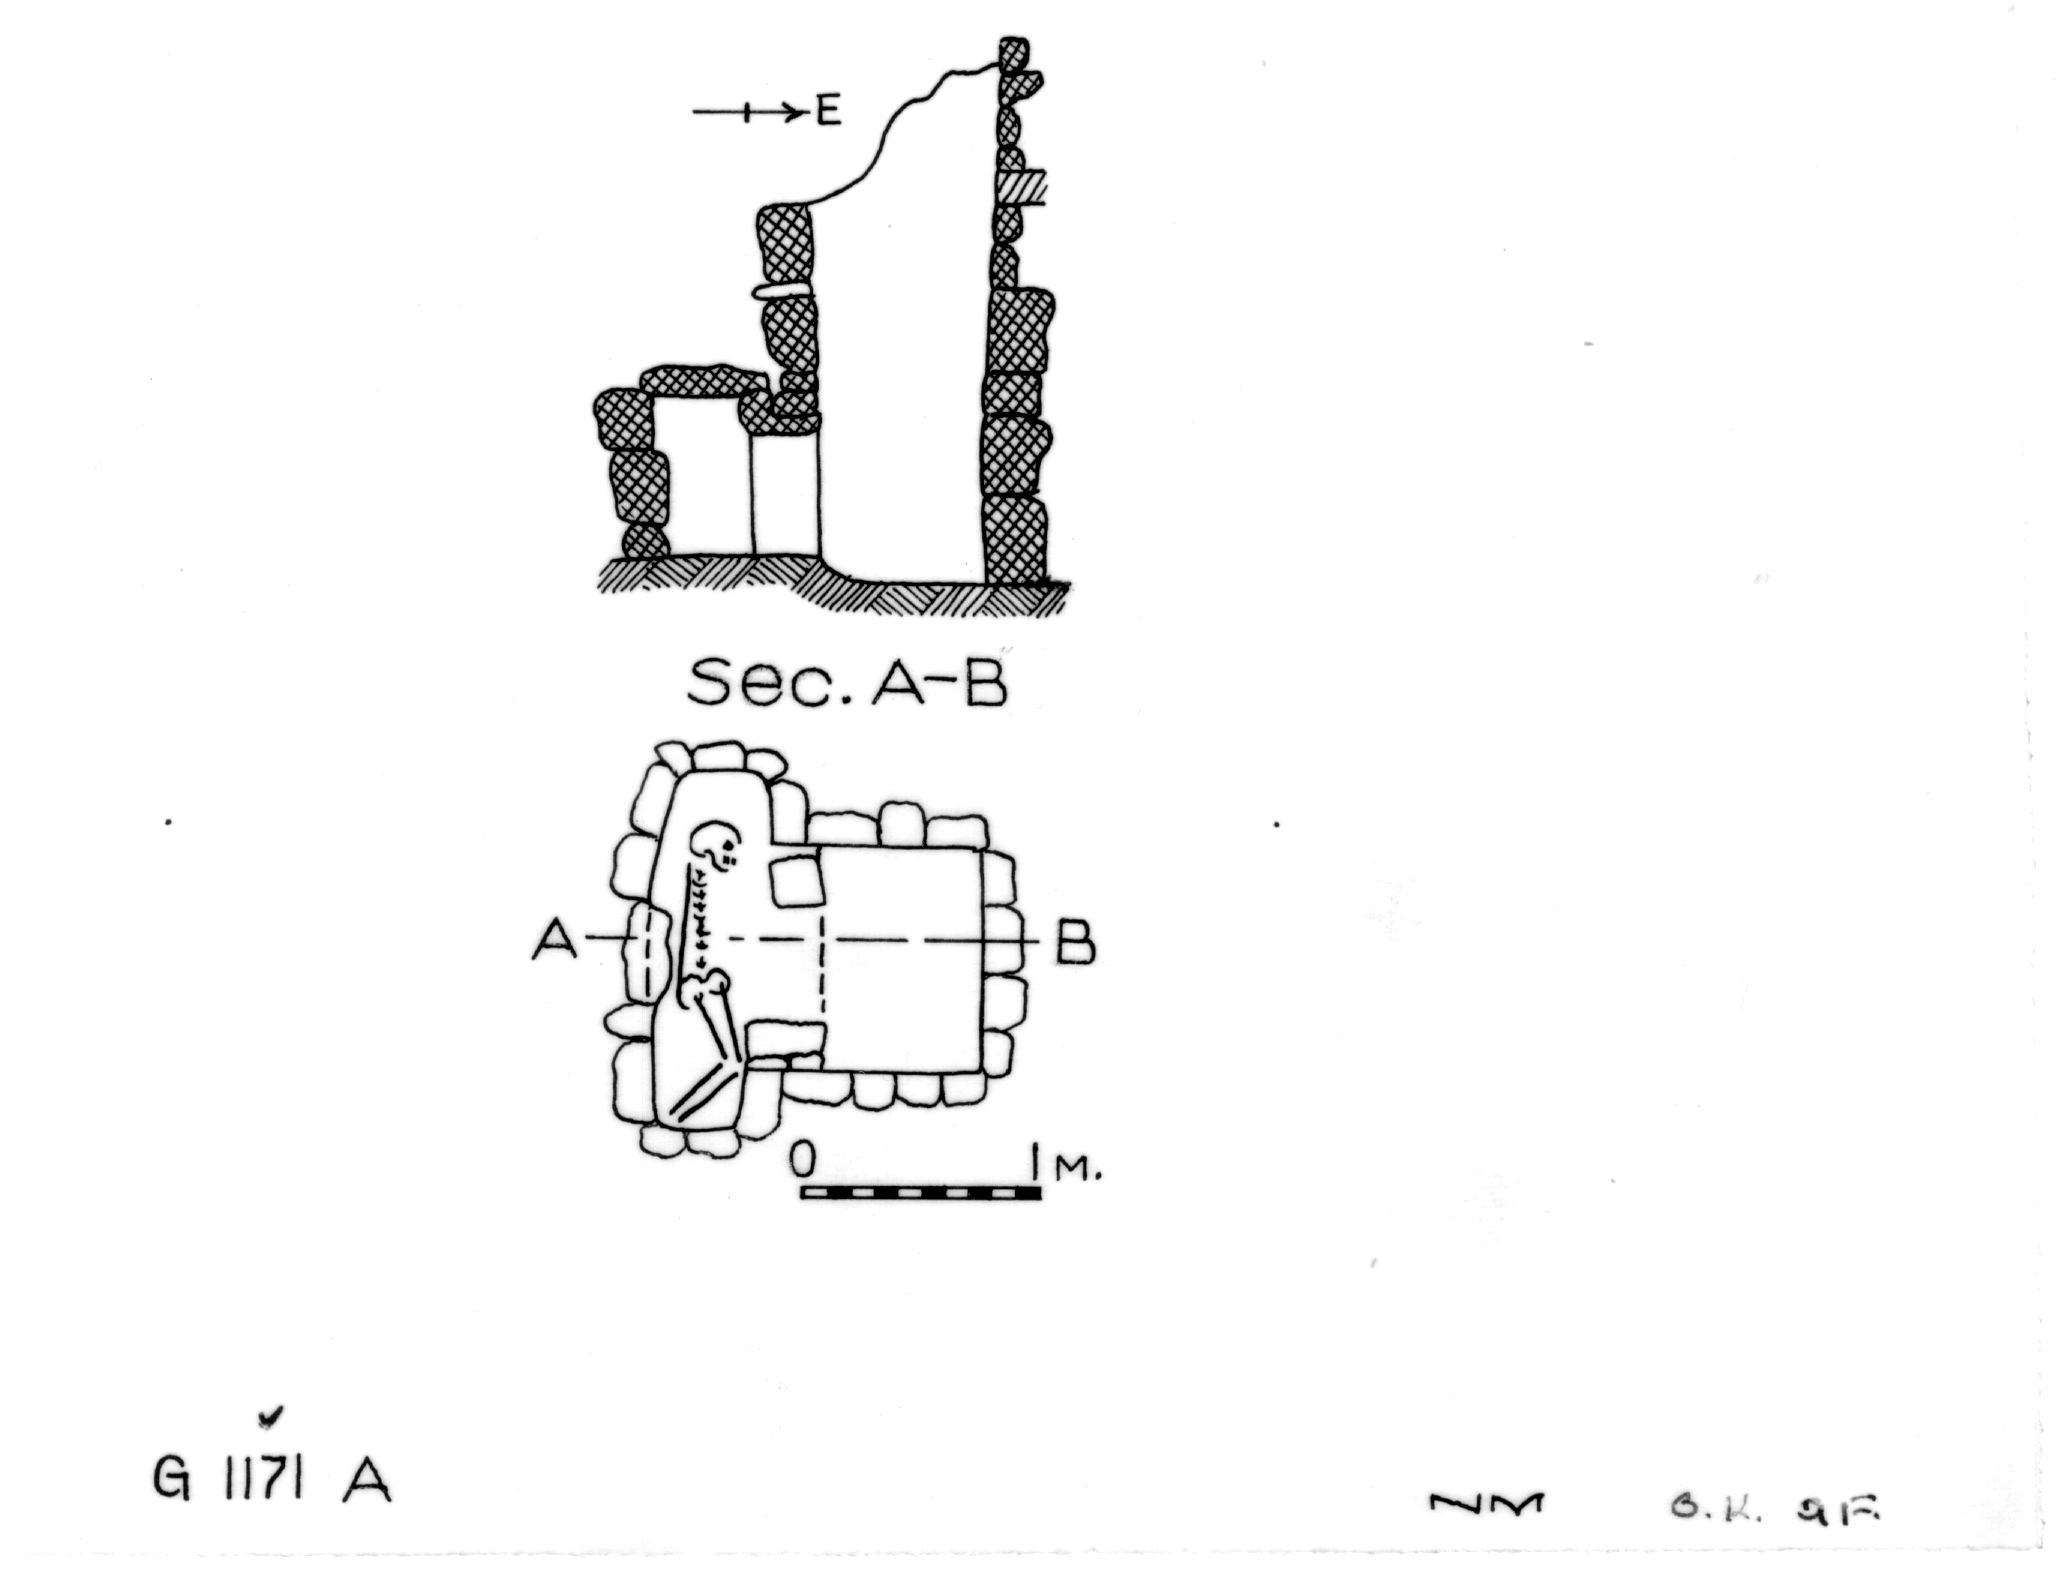 Maps and plans: G 1171, Shaft A